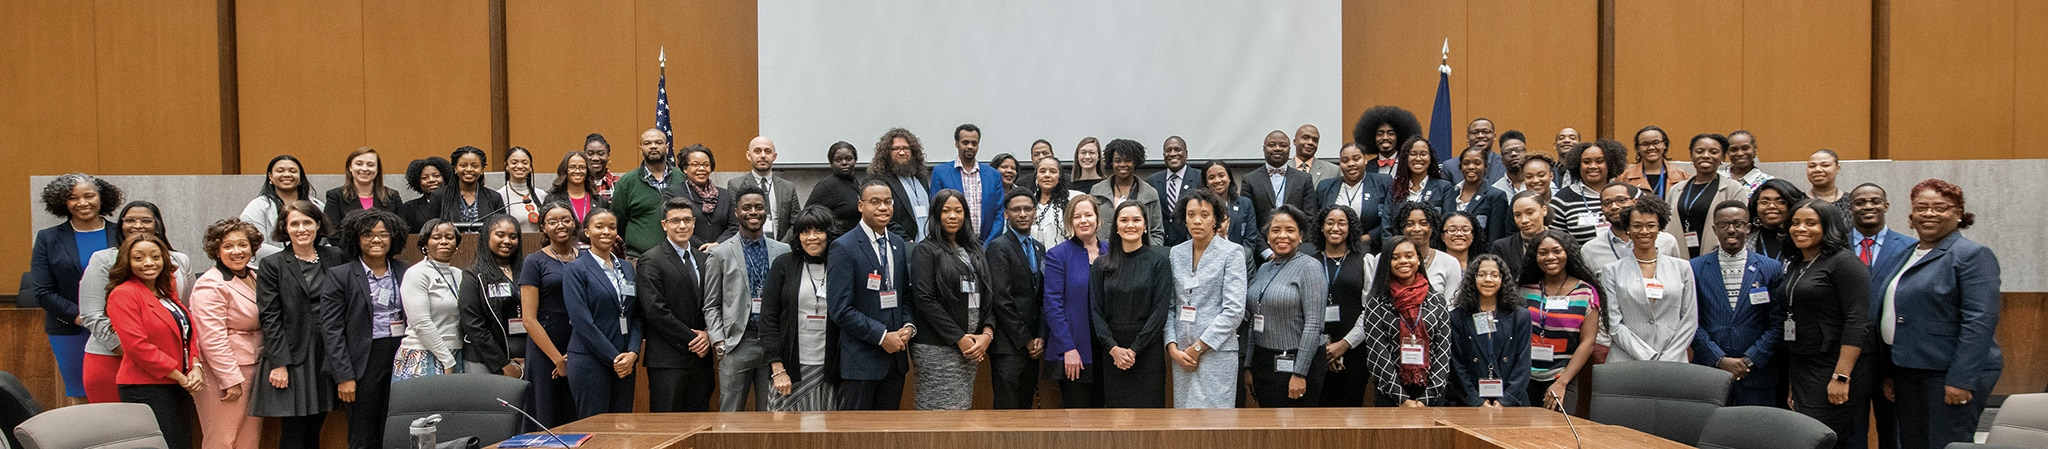 Photo showing the 11th Annual Historically Black Colleges and Universities Foreign Policy Conference in Washington D.C., February 14, 2020. [Department of State]